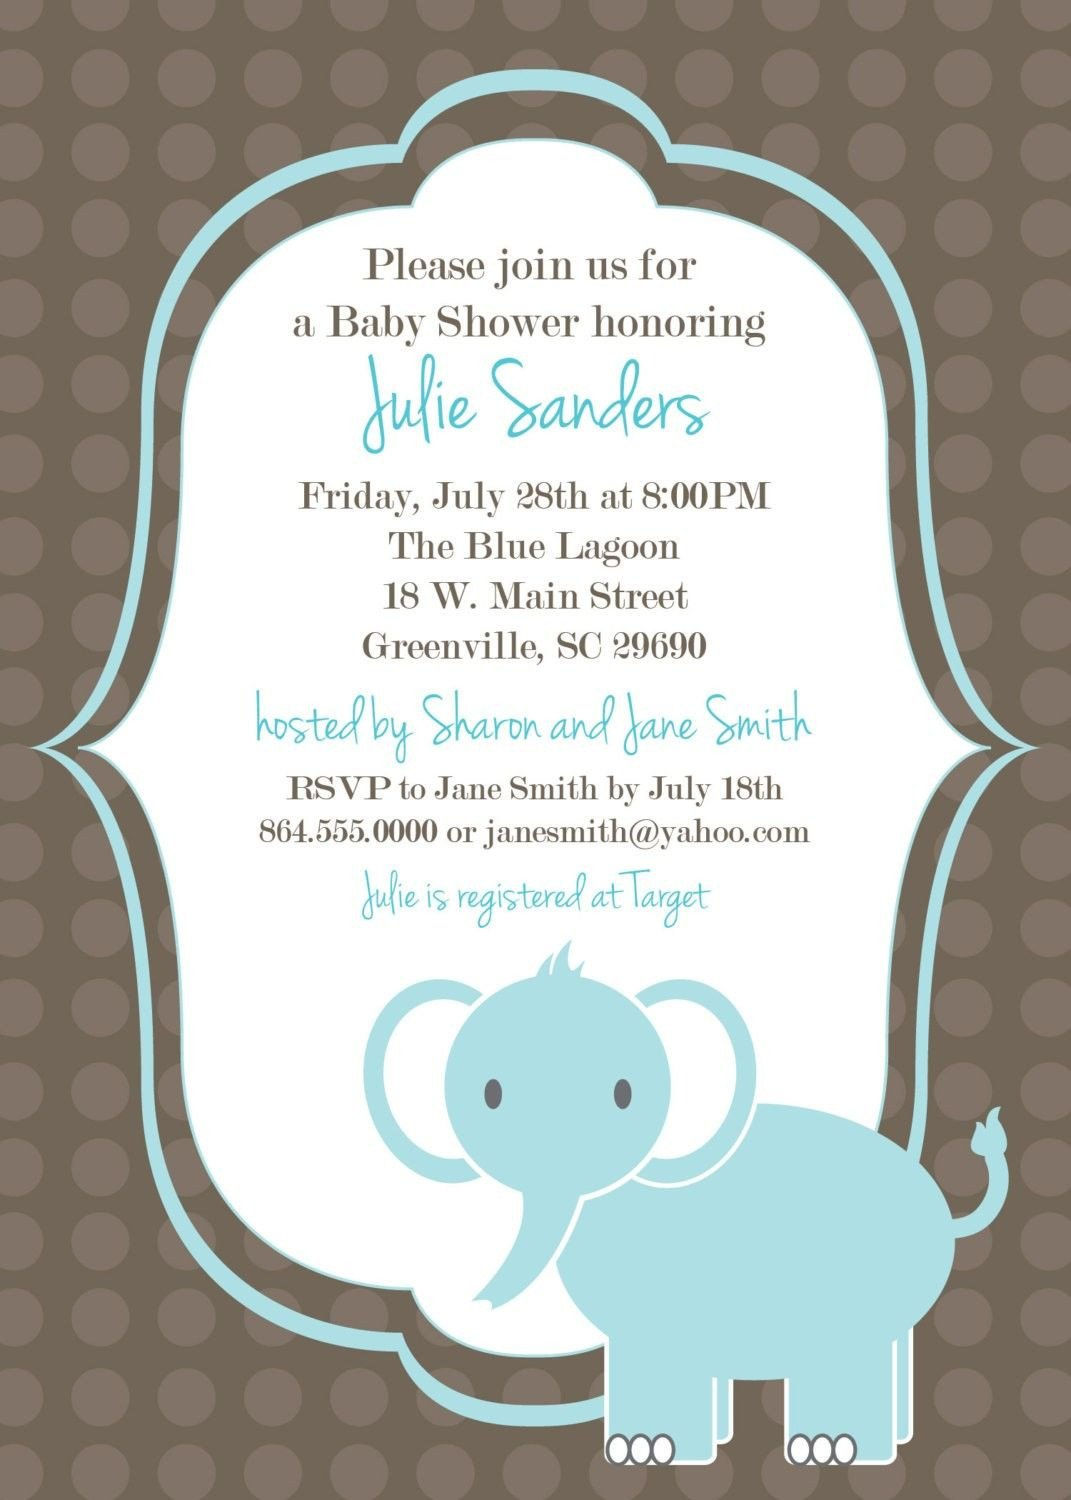 Baby Shower Invitation Free Template Download Free Template Got the Free Baby Shower